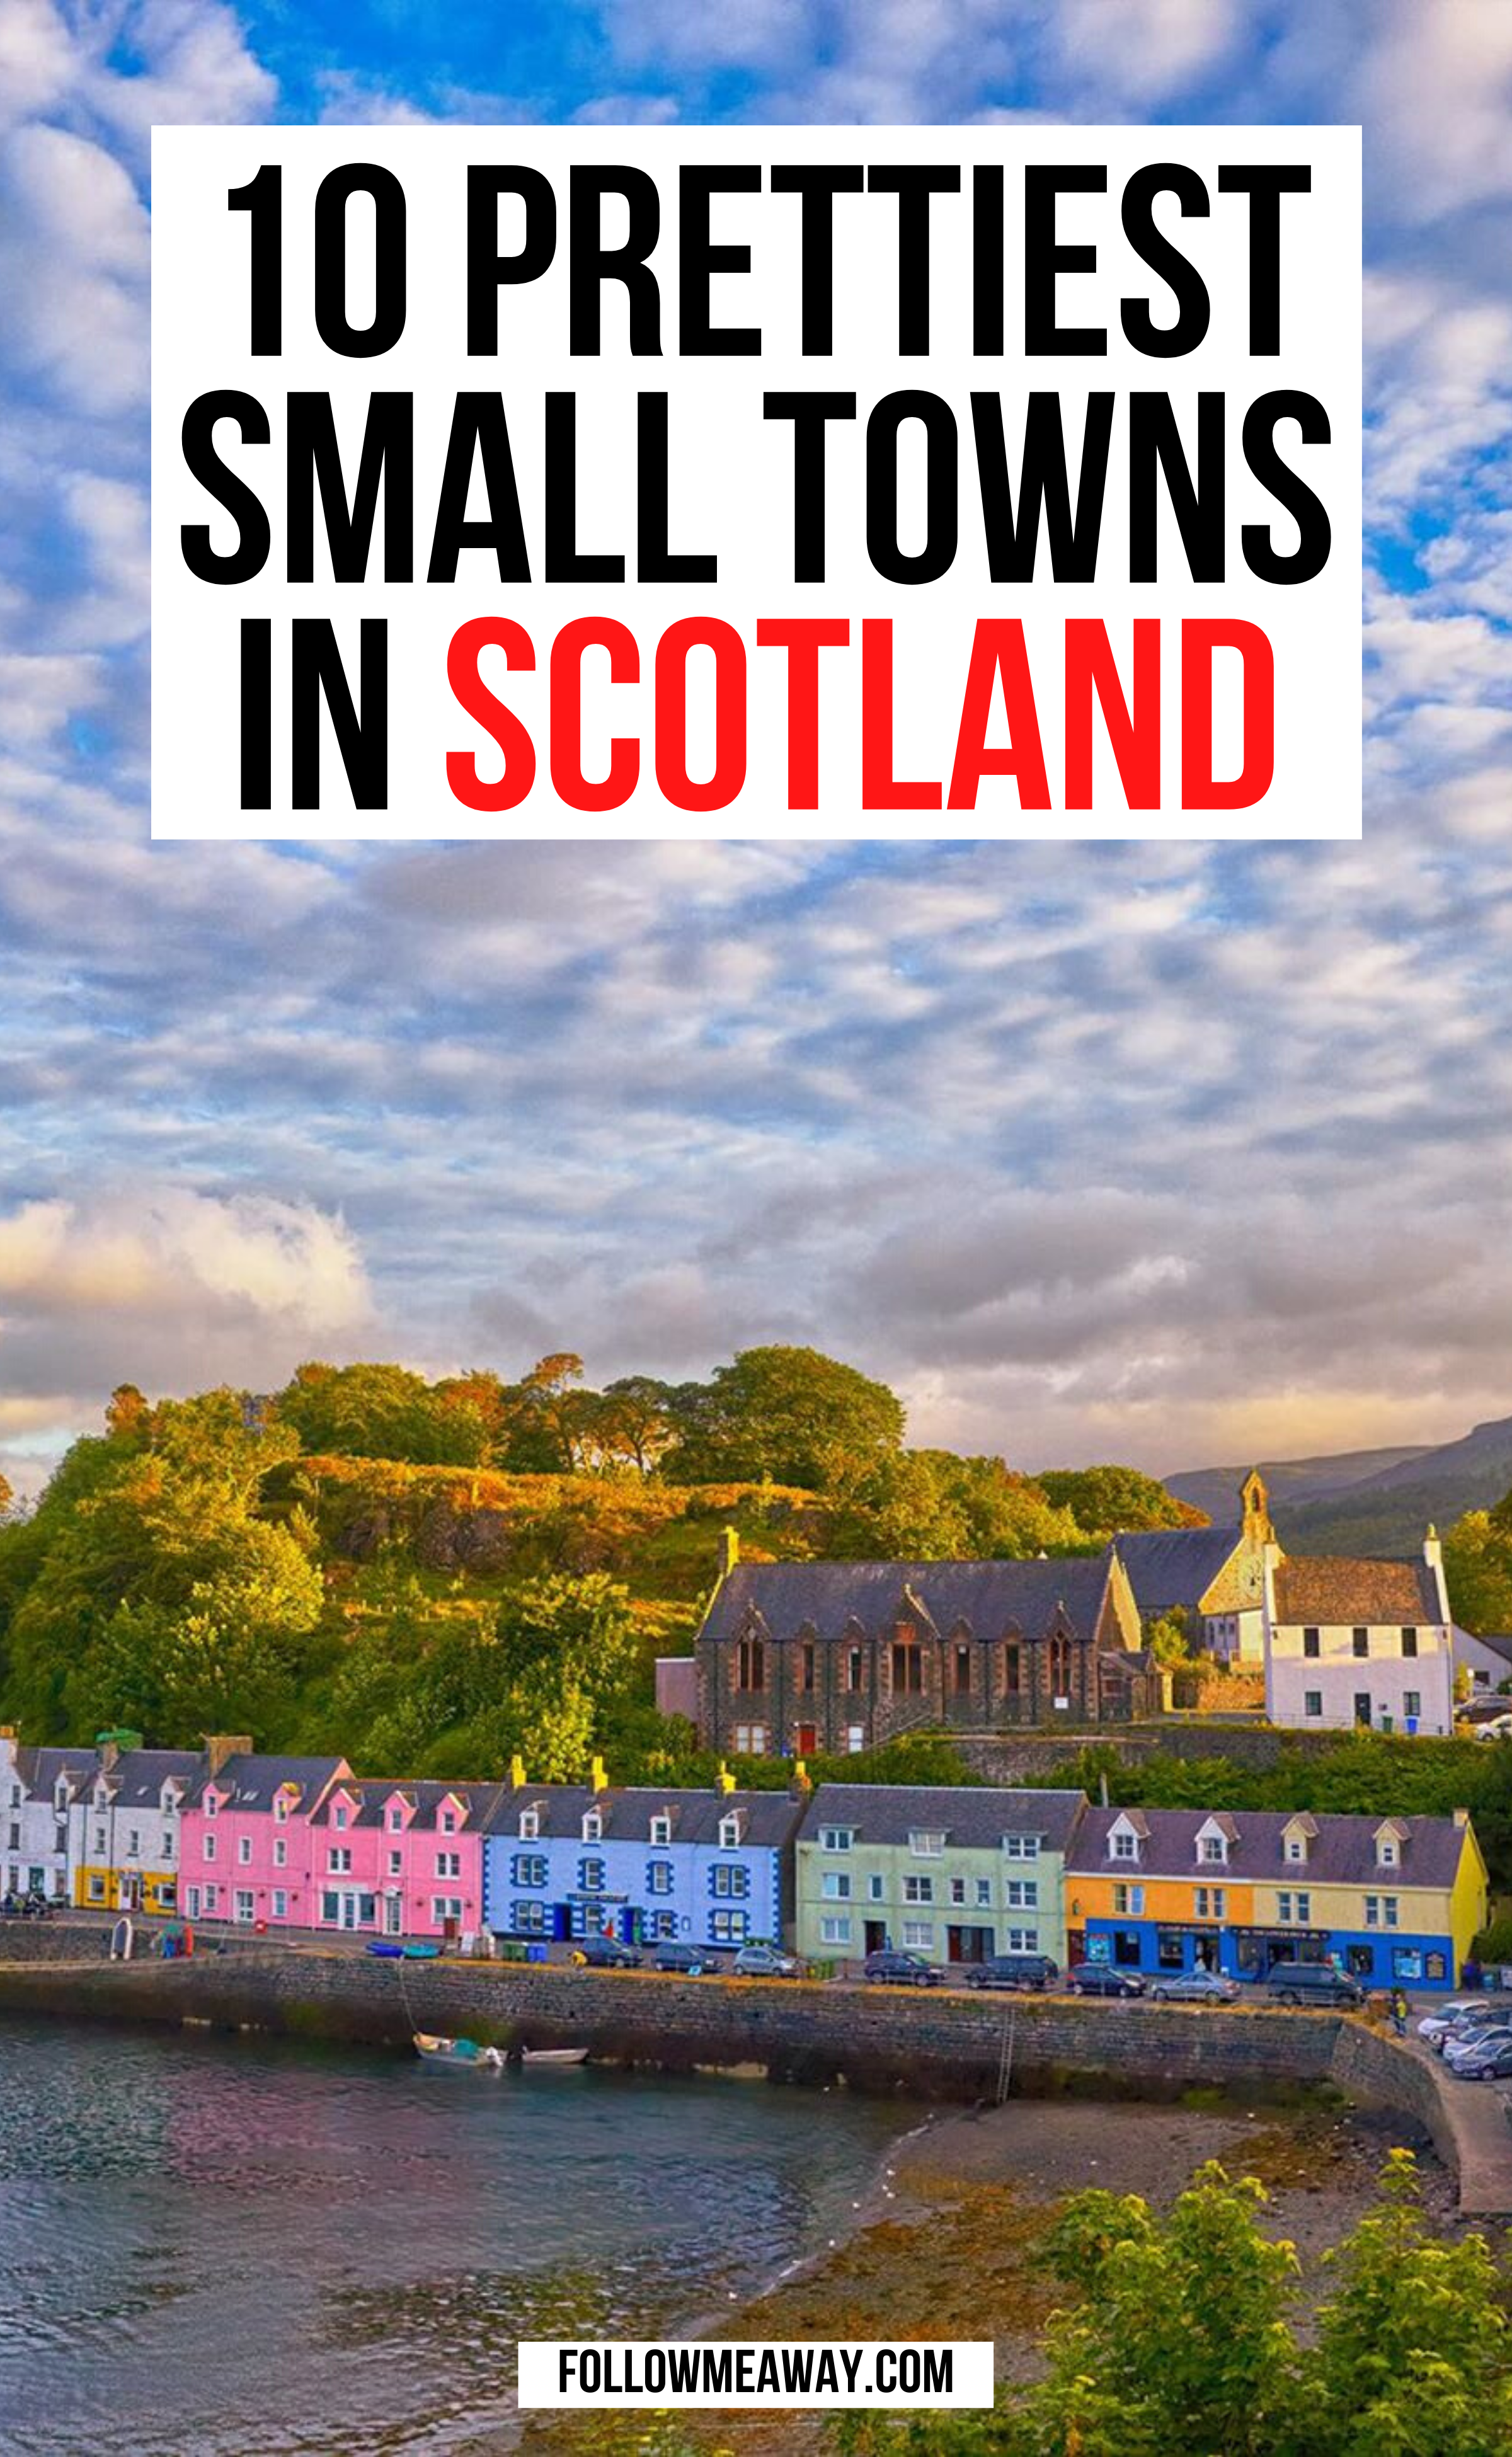 10 Prettiest Small Towns In Scotland | magical places in Scotland | where to go in scotland | tips and tricks for scotland travelers | bucket list locations for scotland #scotland #traveltips